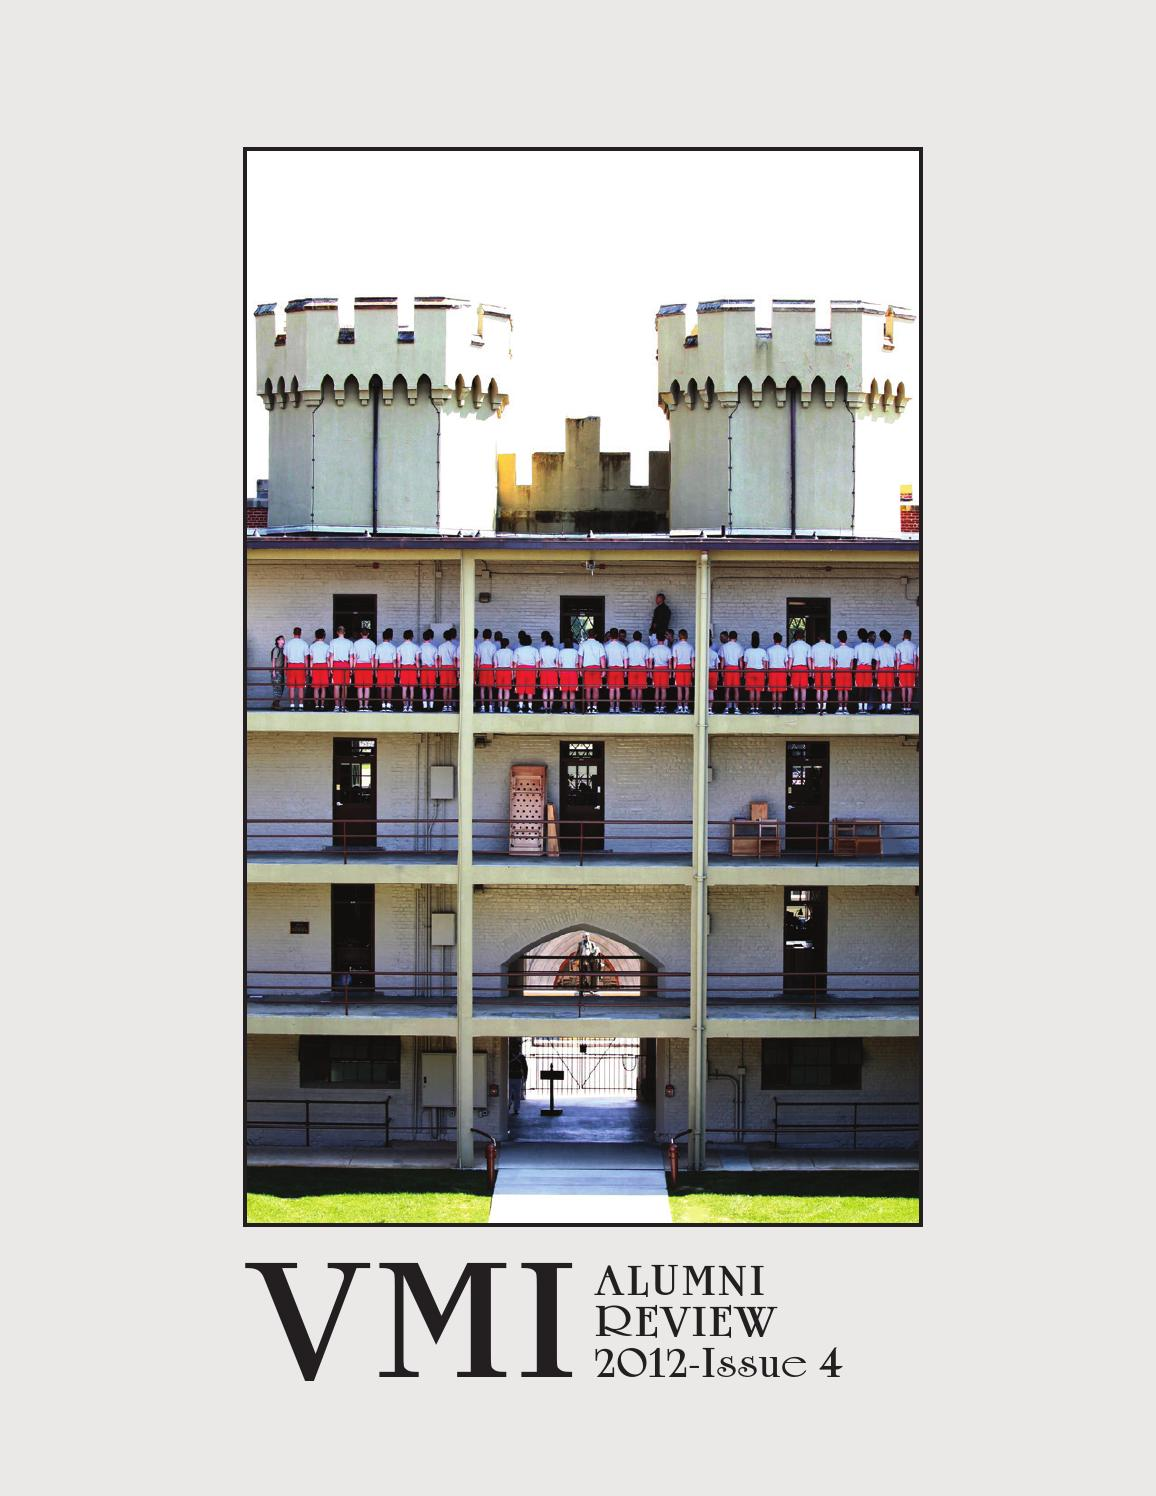 61afd9017ee Alumni Review 2012 Issue 4 by VMI Alumni Agencies - issuu